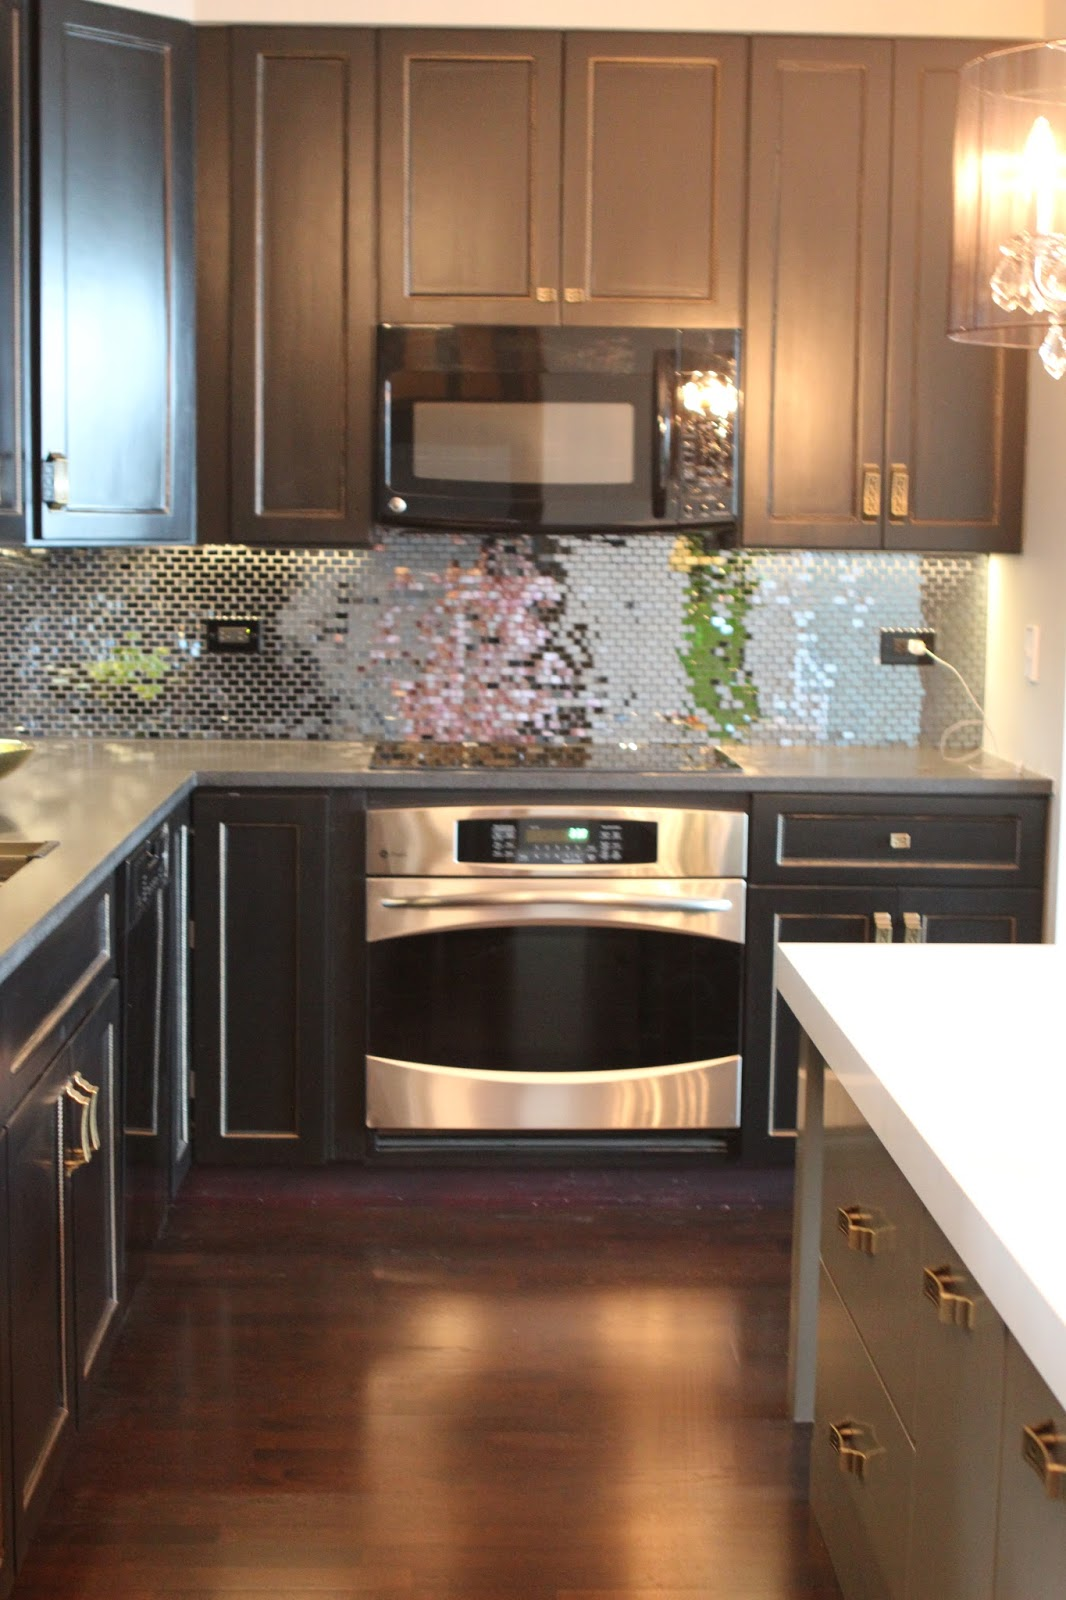 Romancing the Home: Glam Kitchen in the City on